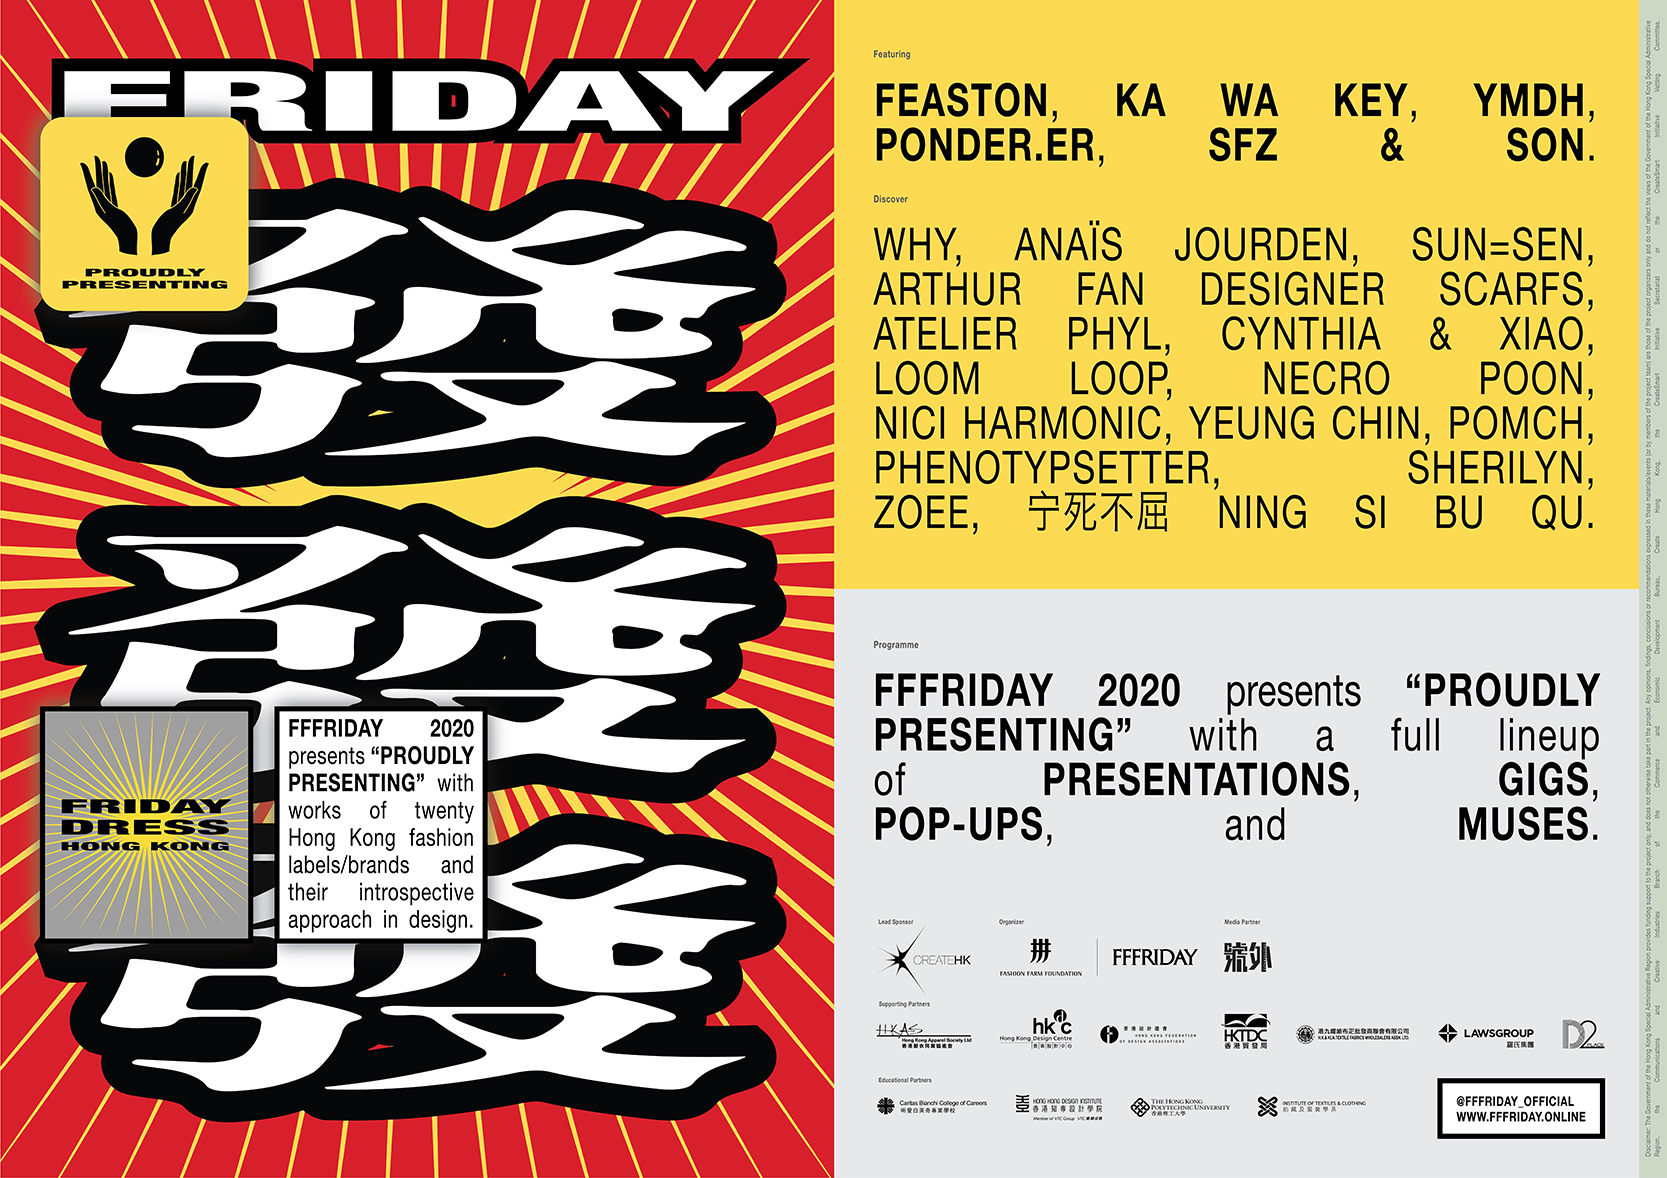 Ron Wan Campaign Poster Design for FFFRIDAY 2020 and Fashion Farm Foundation in Hong Kong.